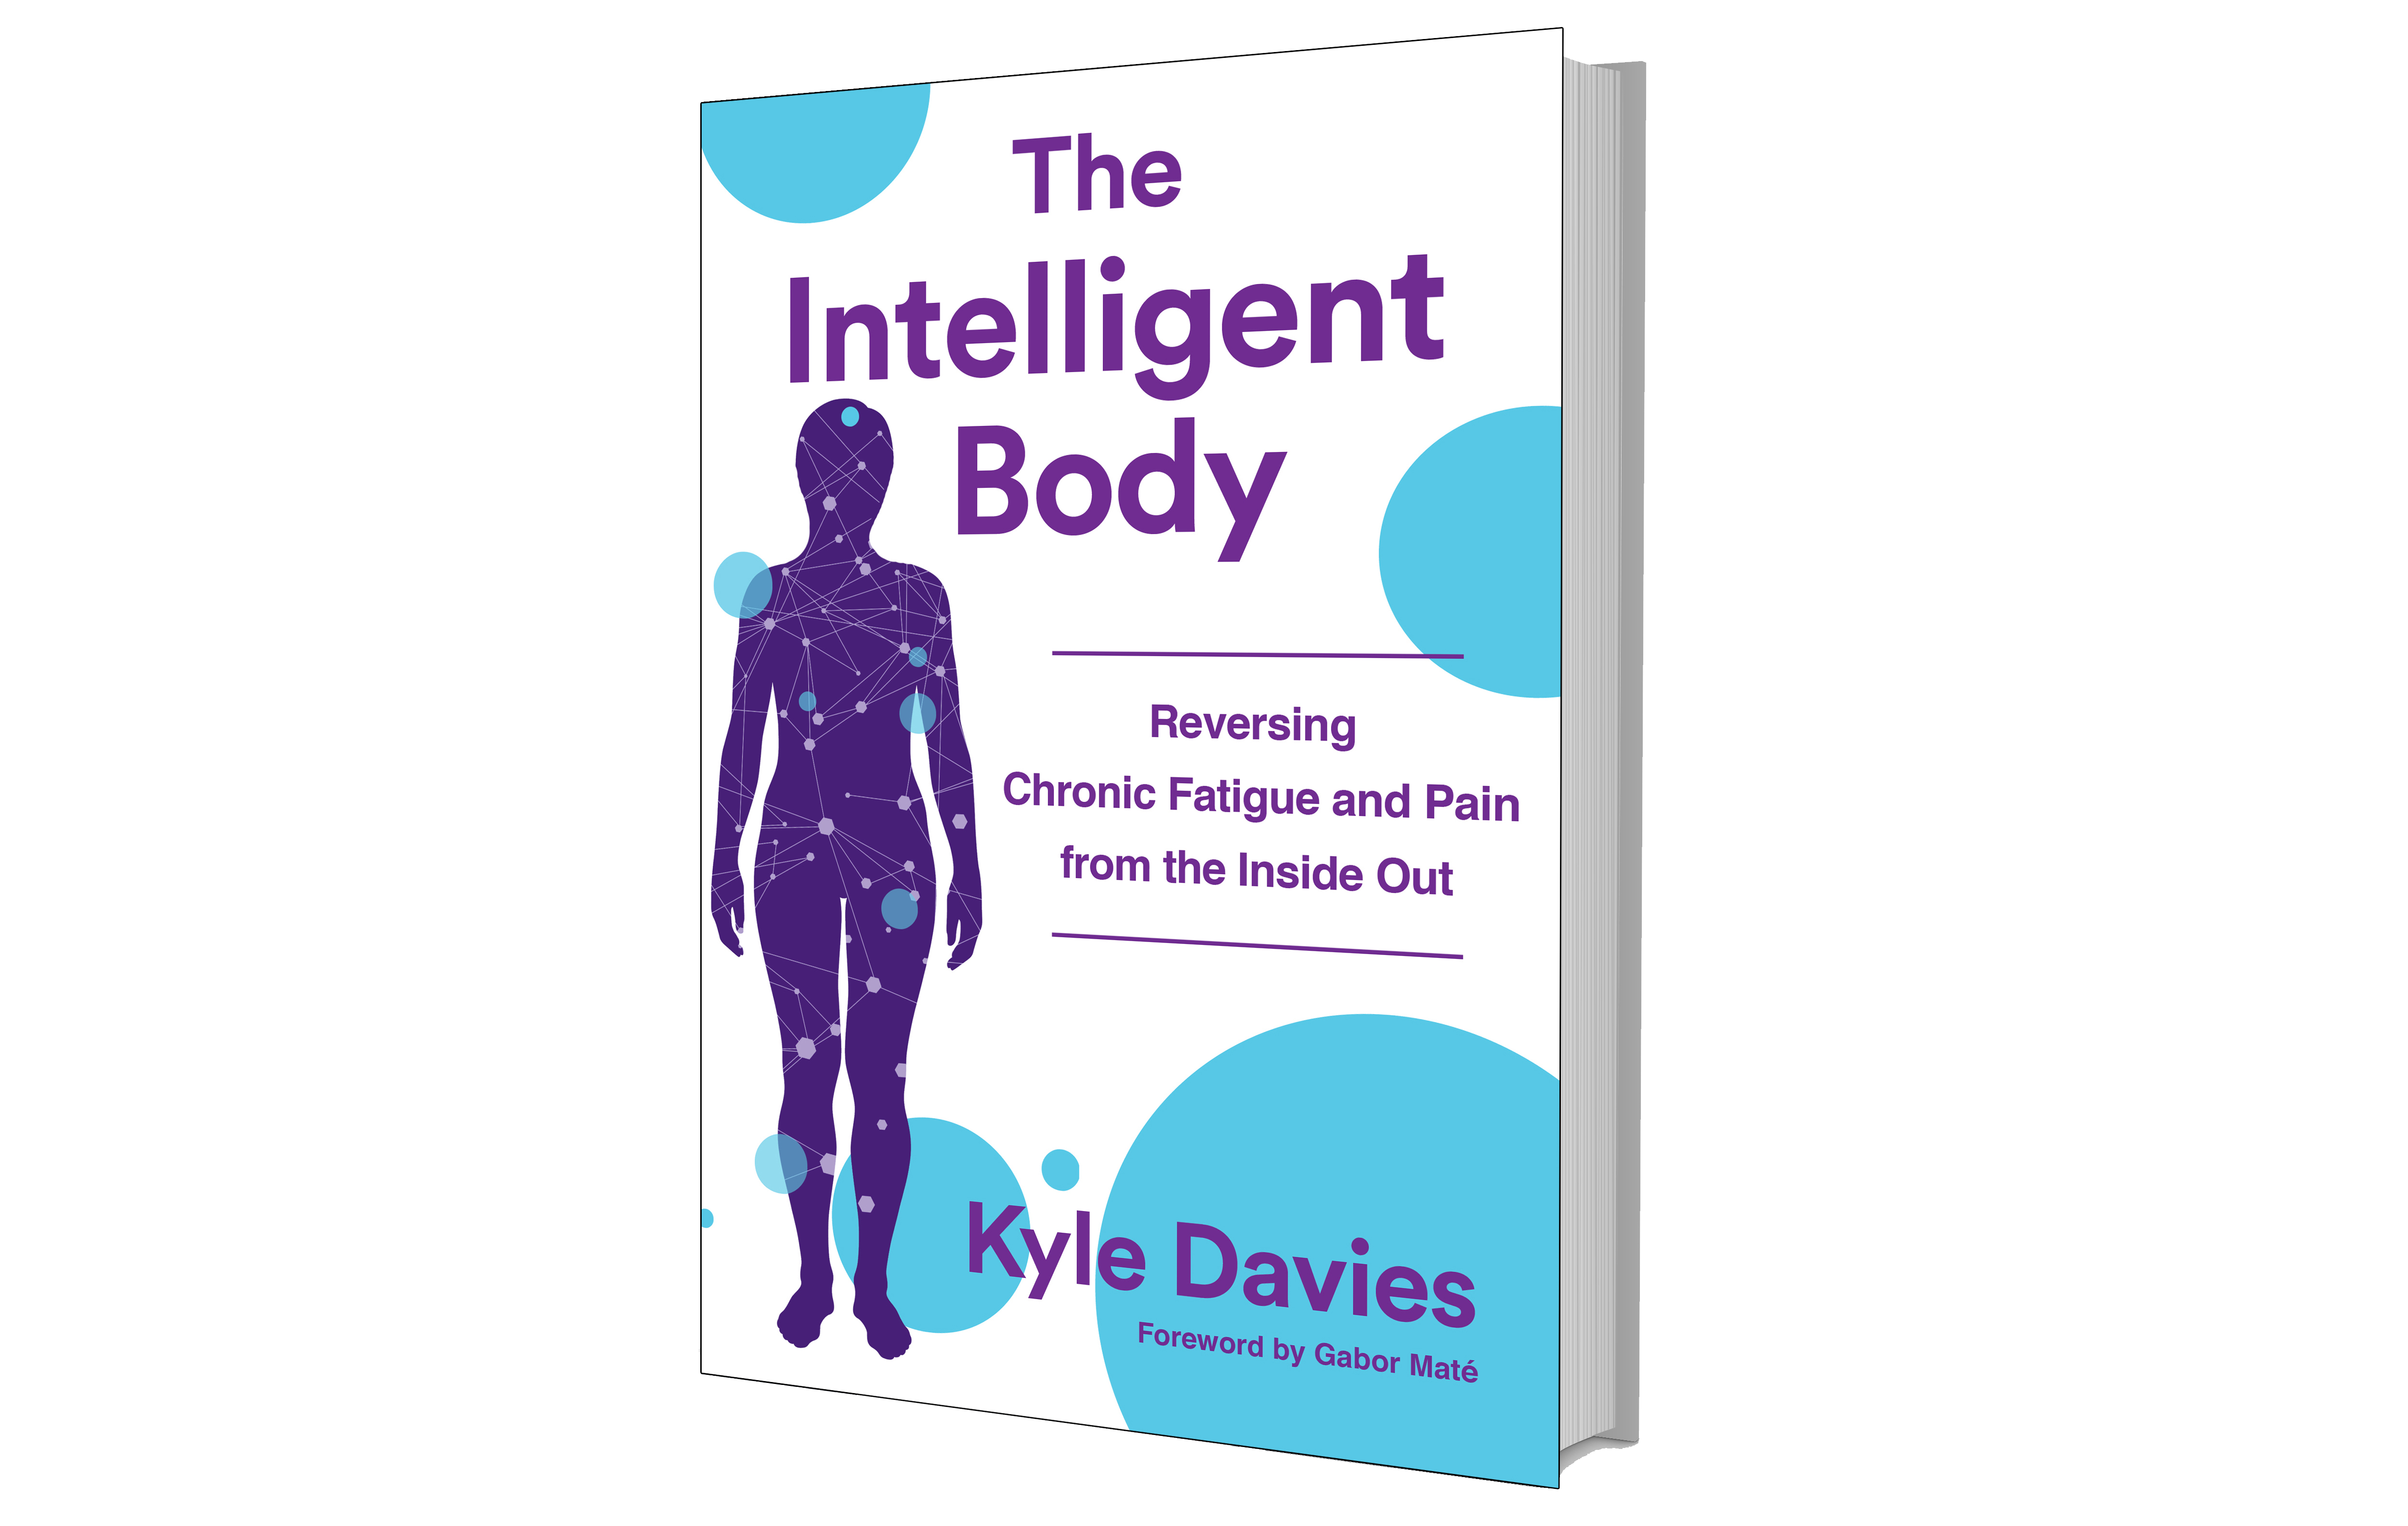 new book offers hope to sufferers of fibromyalgia, chronic fatigue1 comments 0 shares